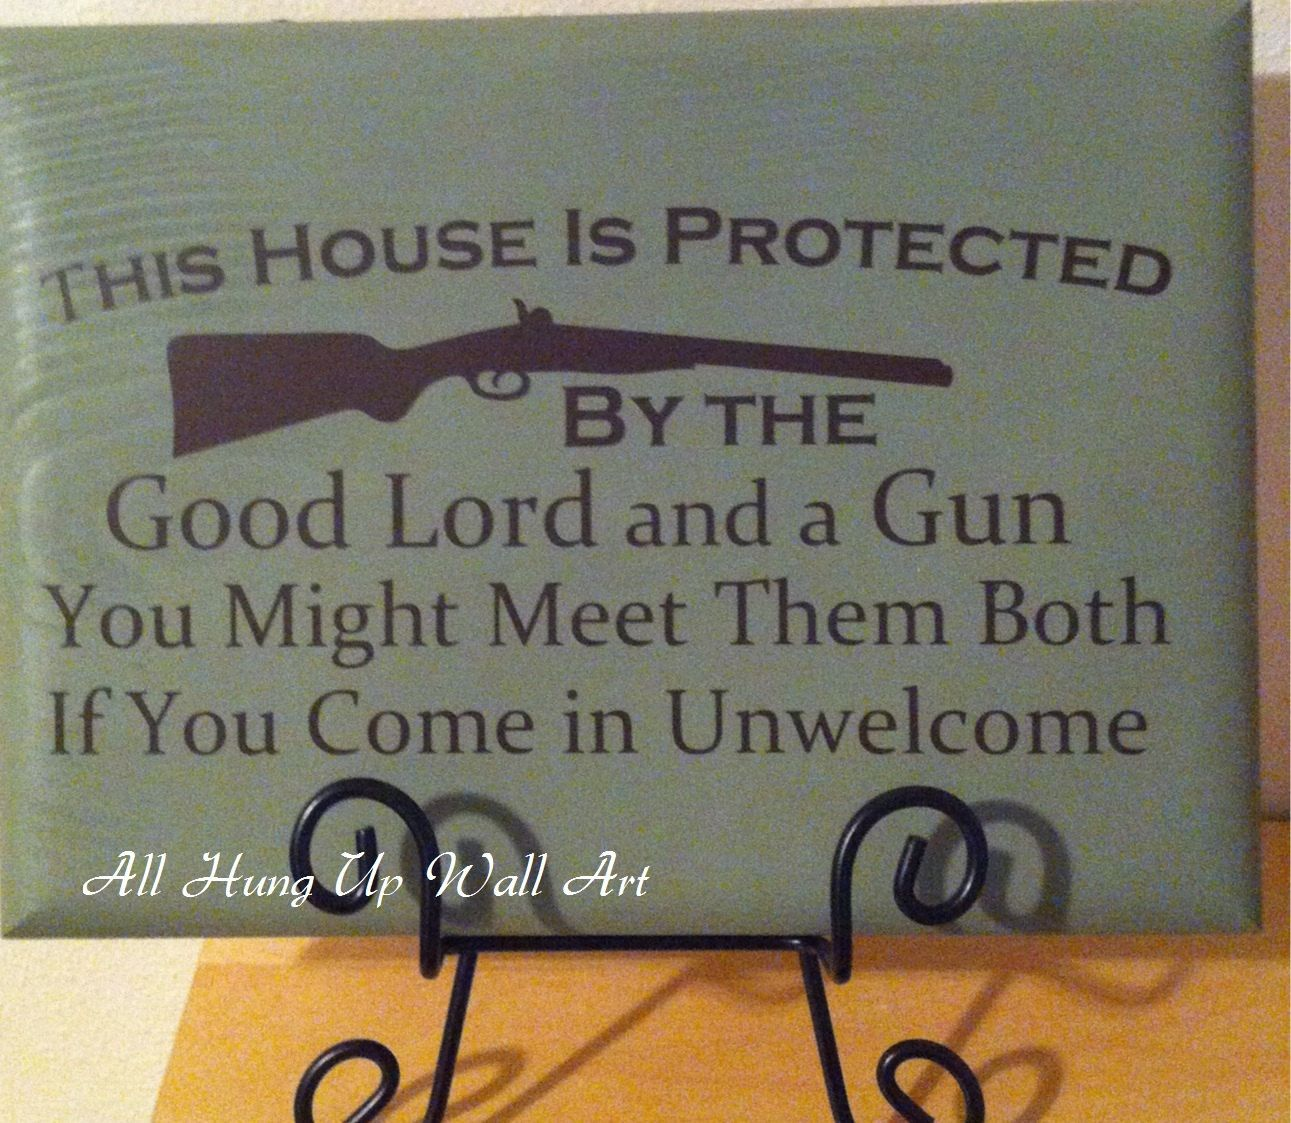 This house is protected by the good lord and a gun you might meet them